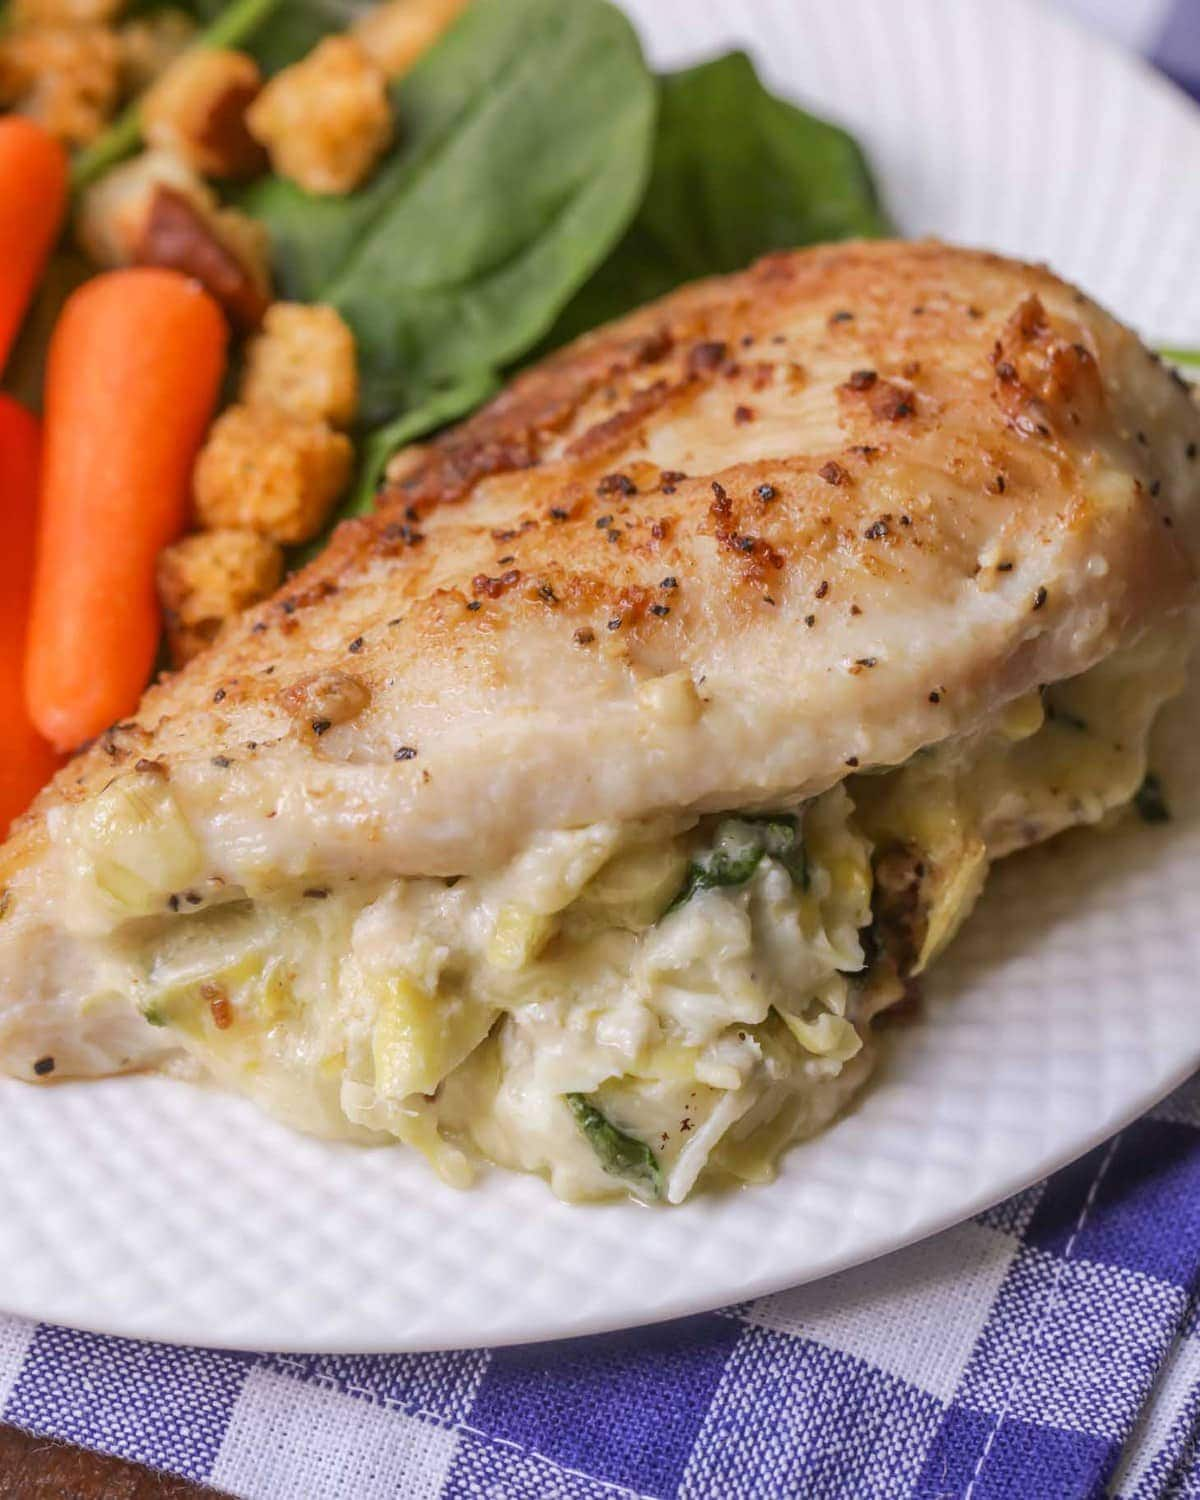 Spinach Artichoke Stuffed Chicken recipe - delicious tender chicken stuffed with a cheesy spinach and artichoke mixture and cooked to perfection!